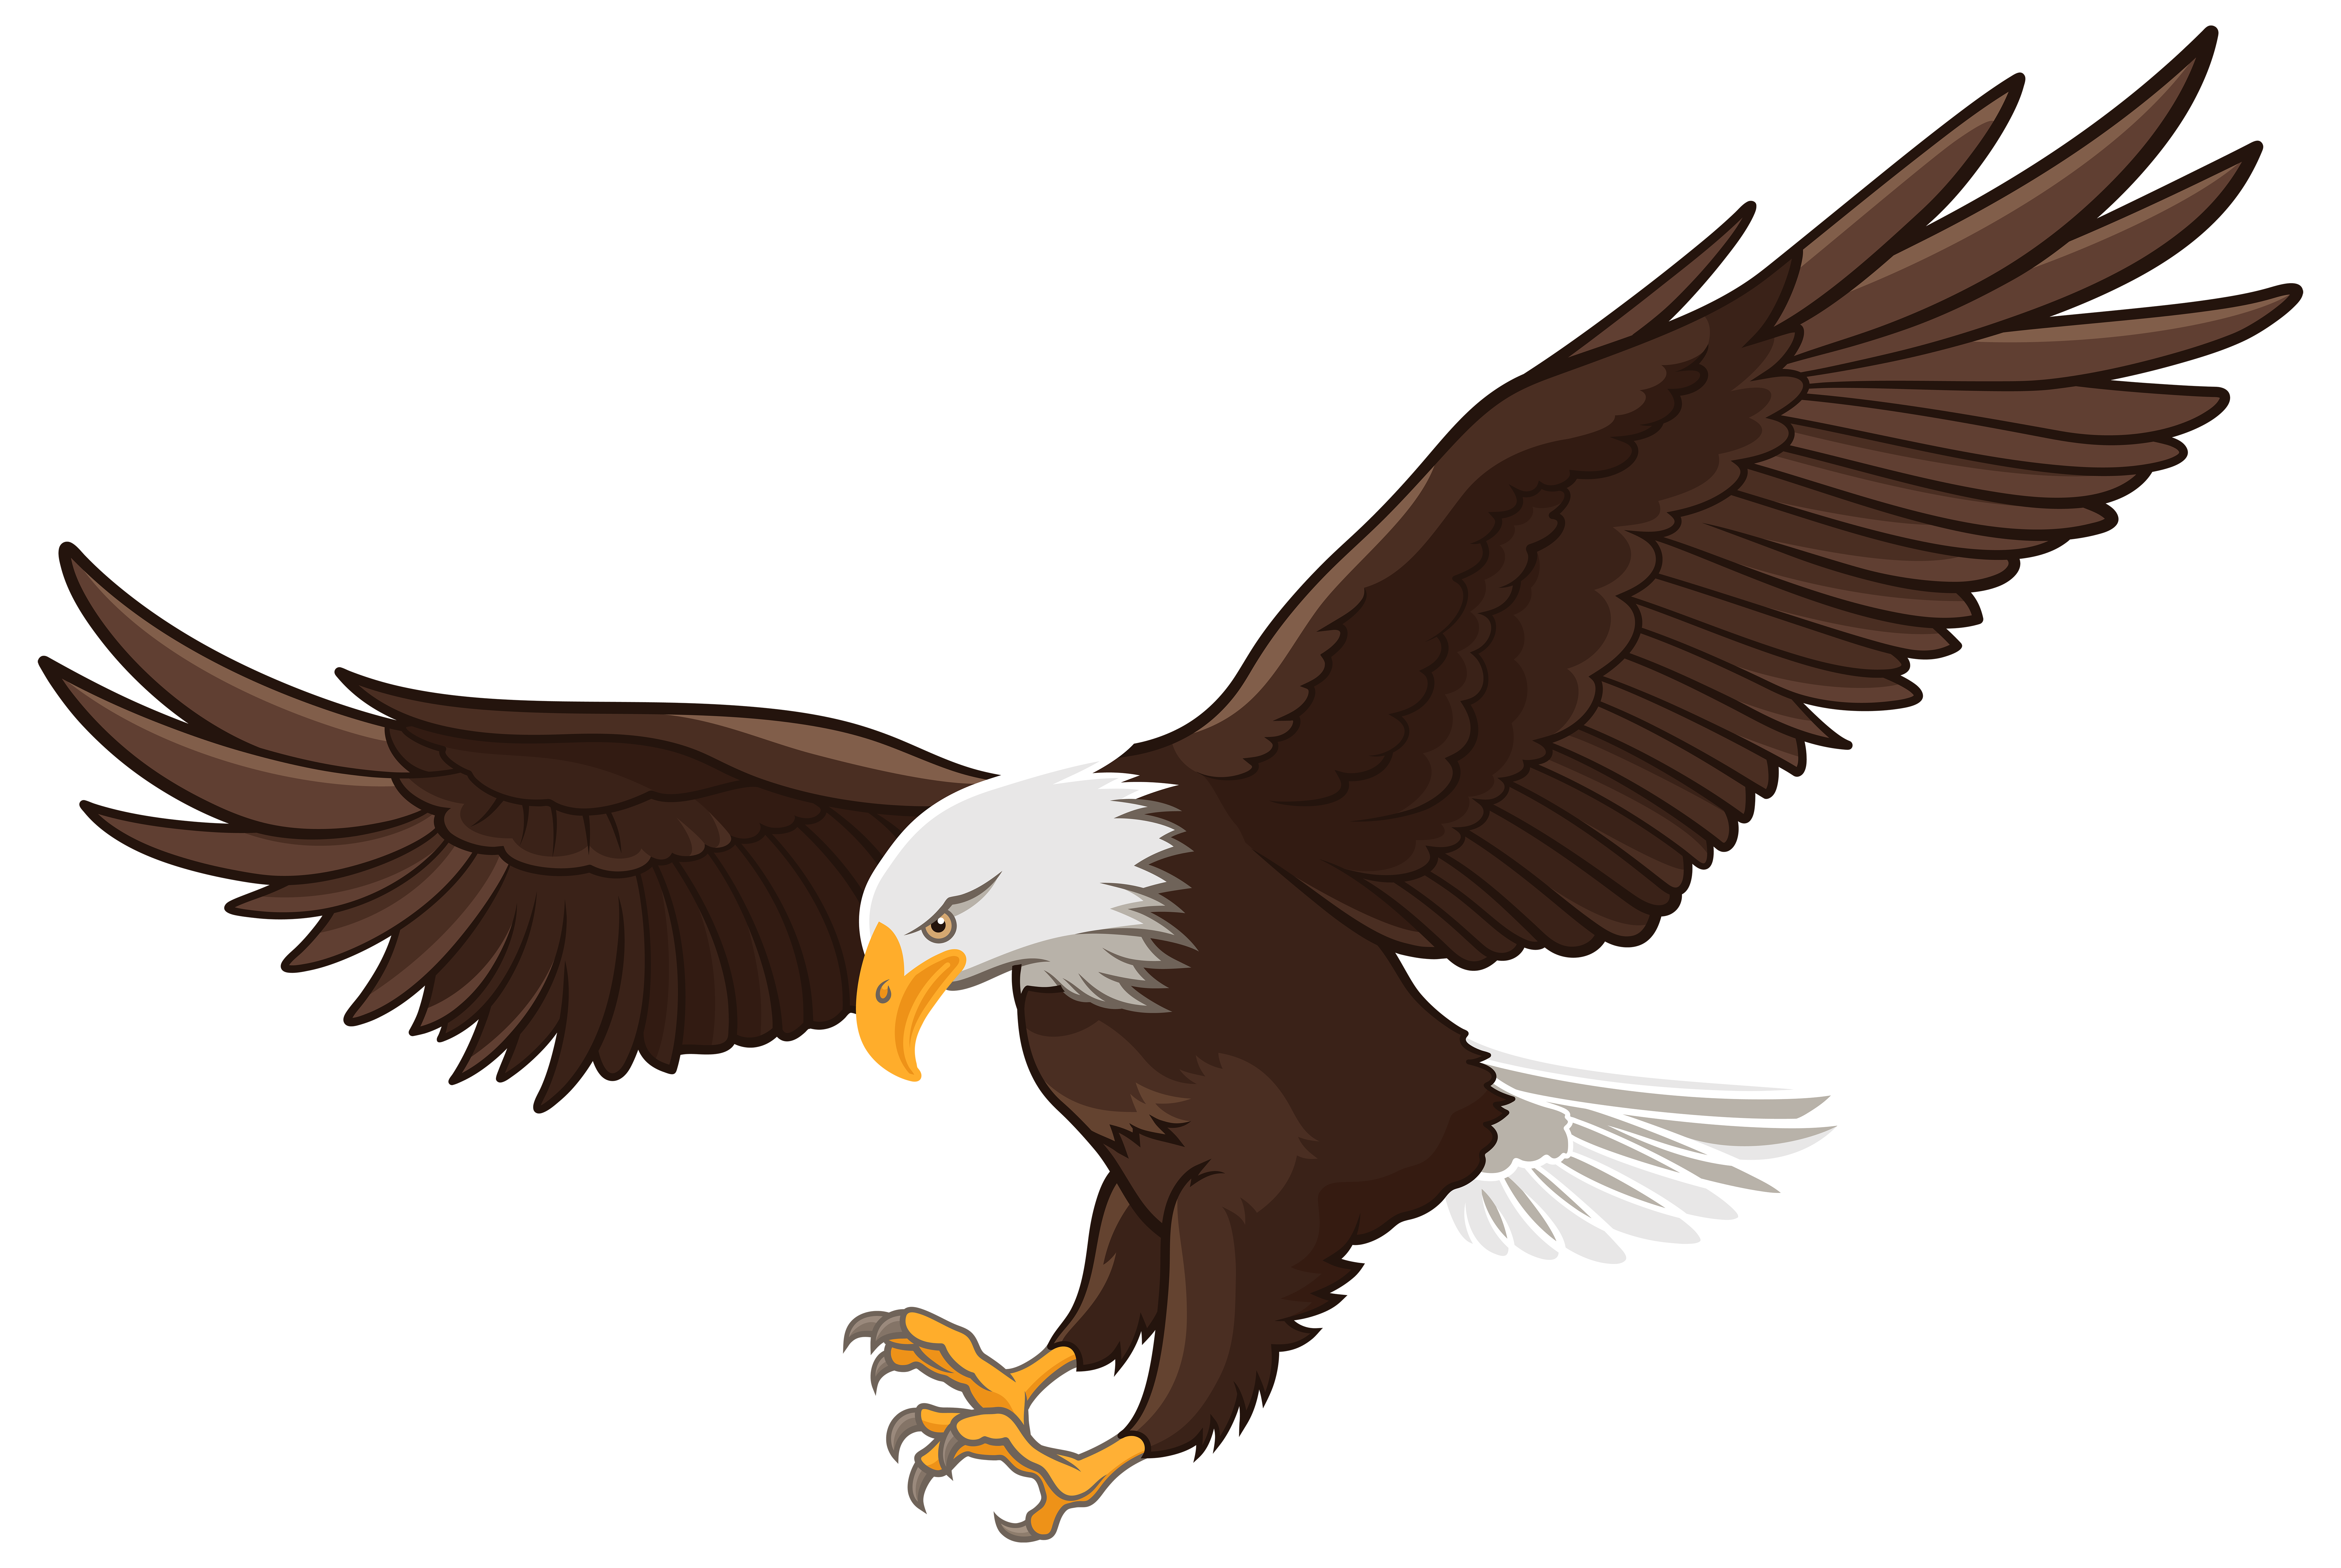 Clipart Of An Eagle at GetDrawings.com.